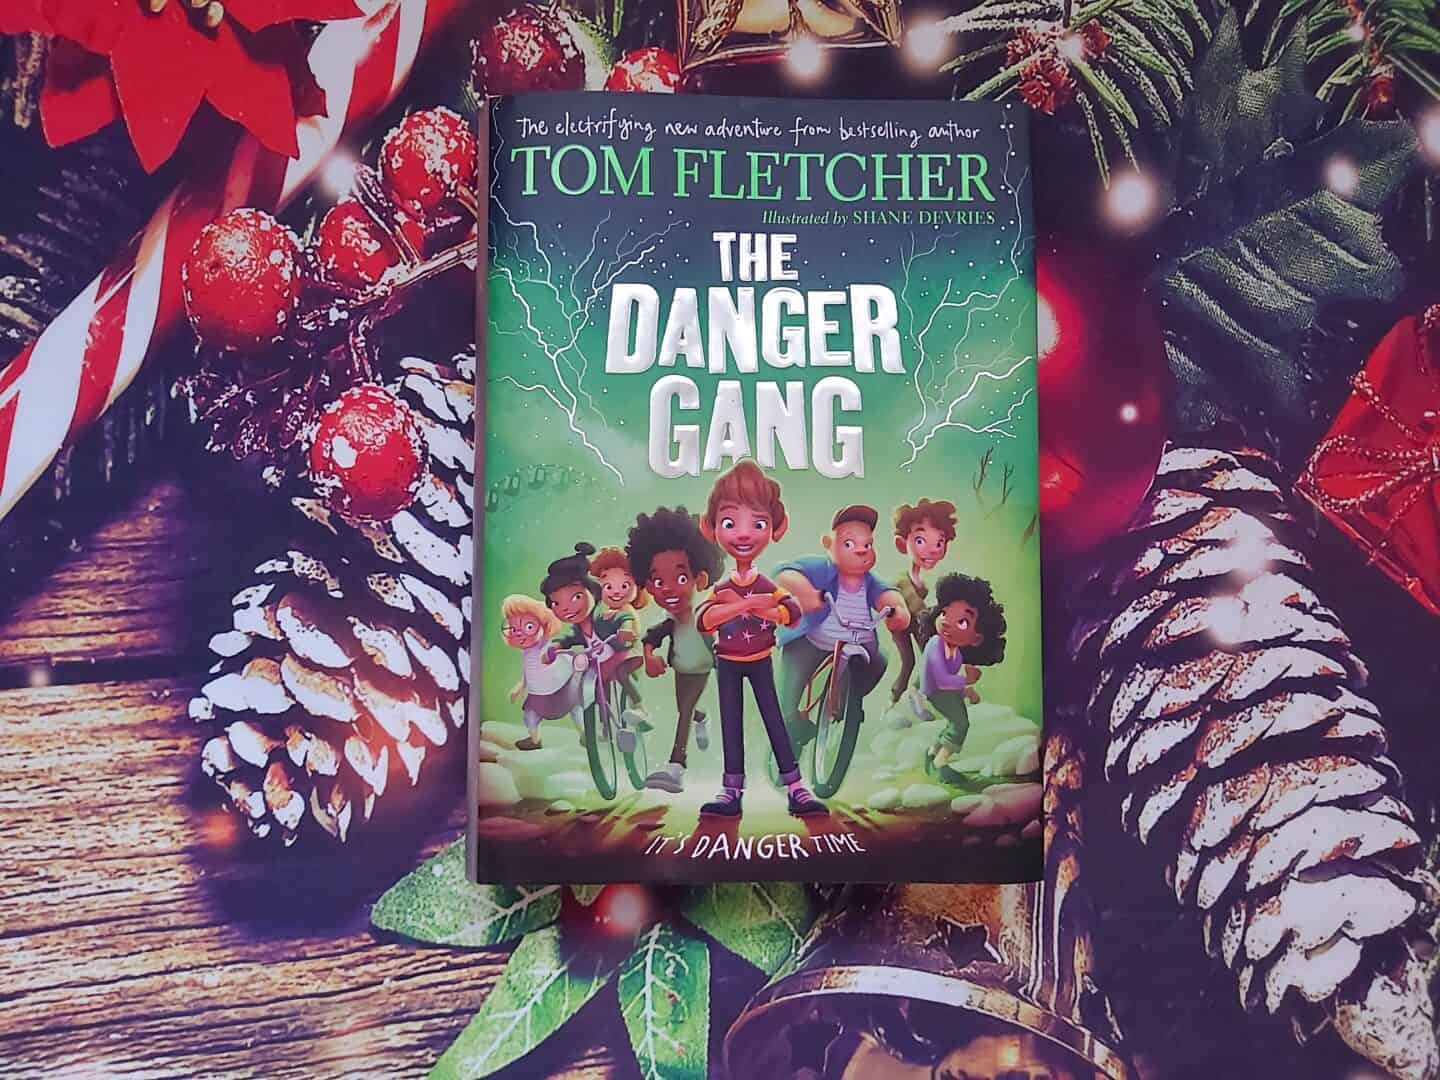 The Danger Gang by Tom Fletcher book against Christmas backdrop